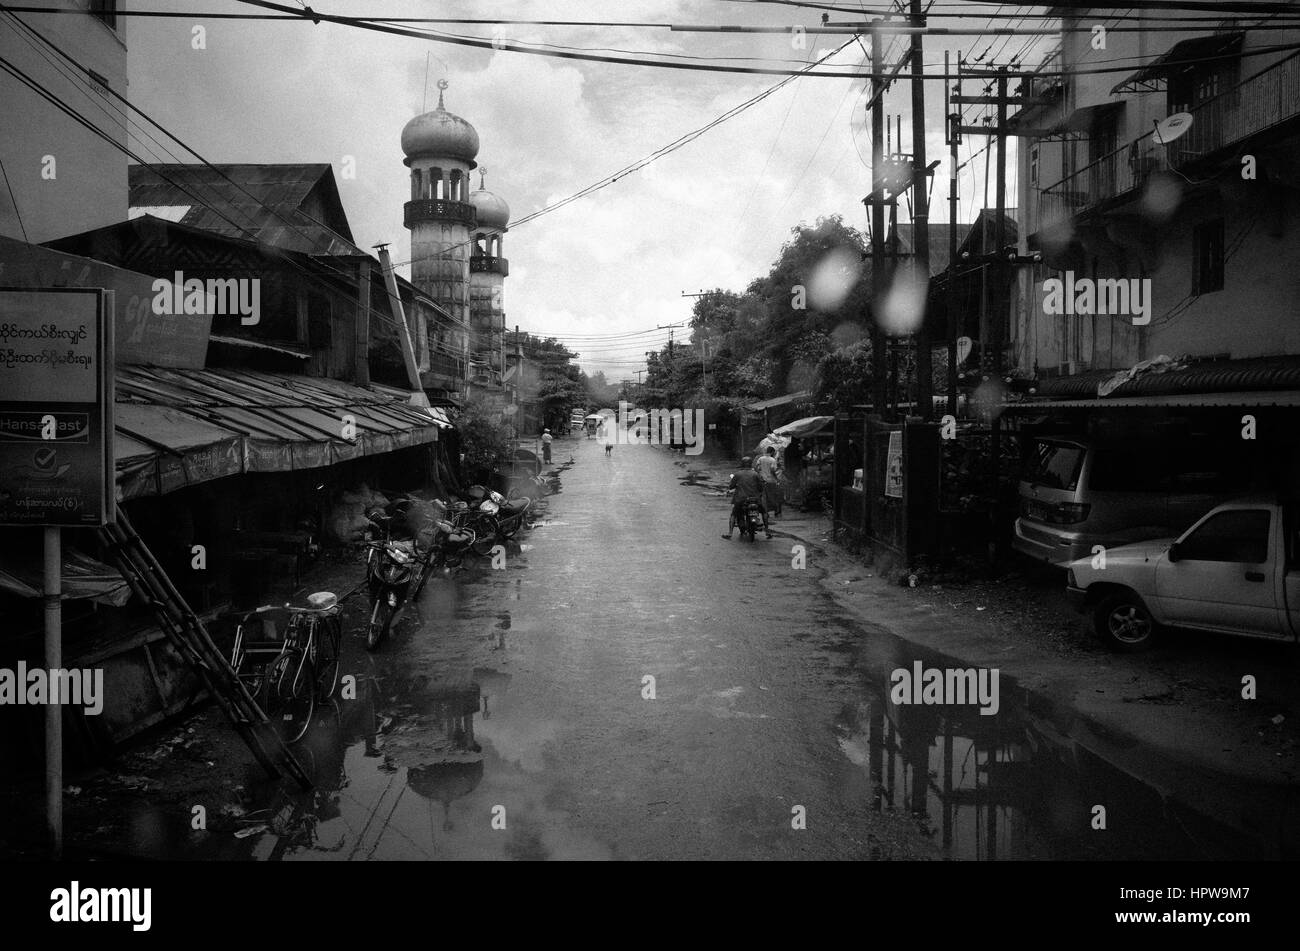 Myanmar in black - Stock Image